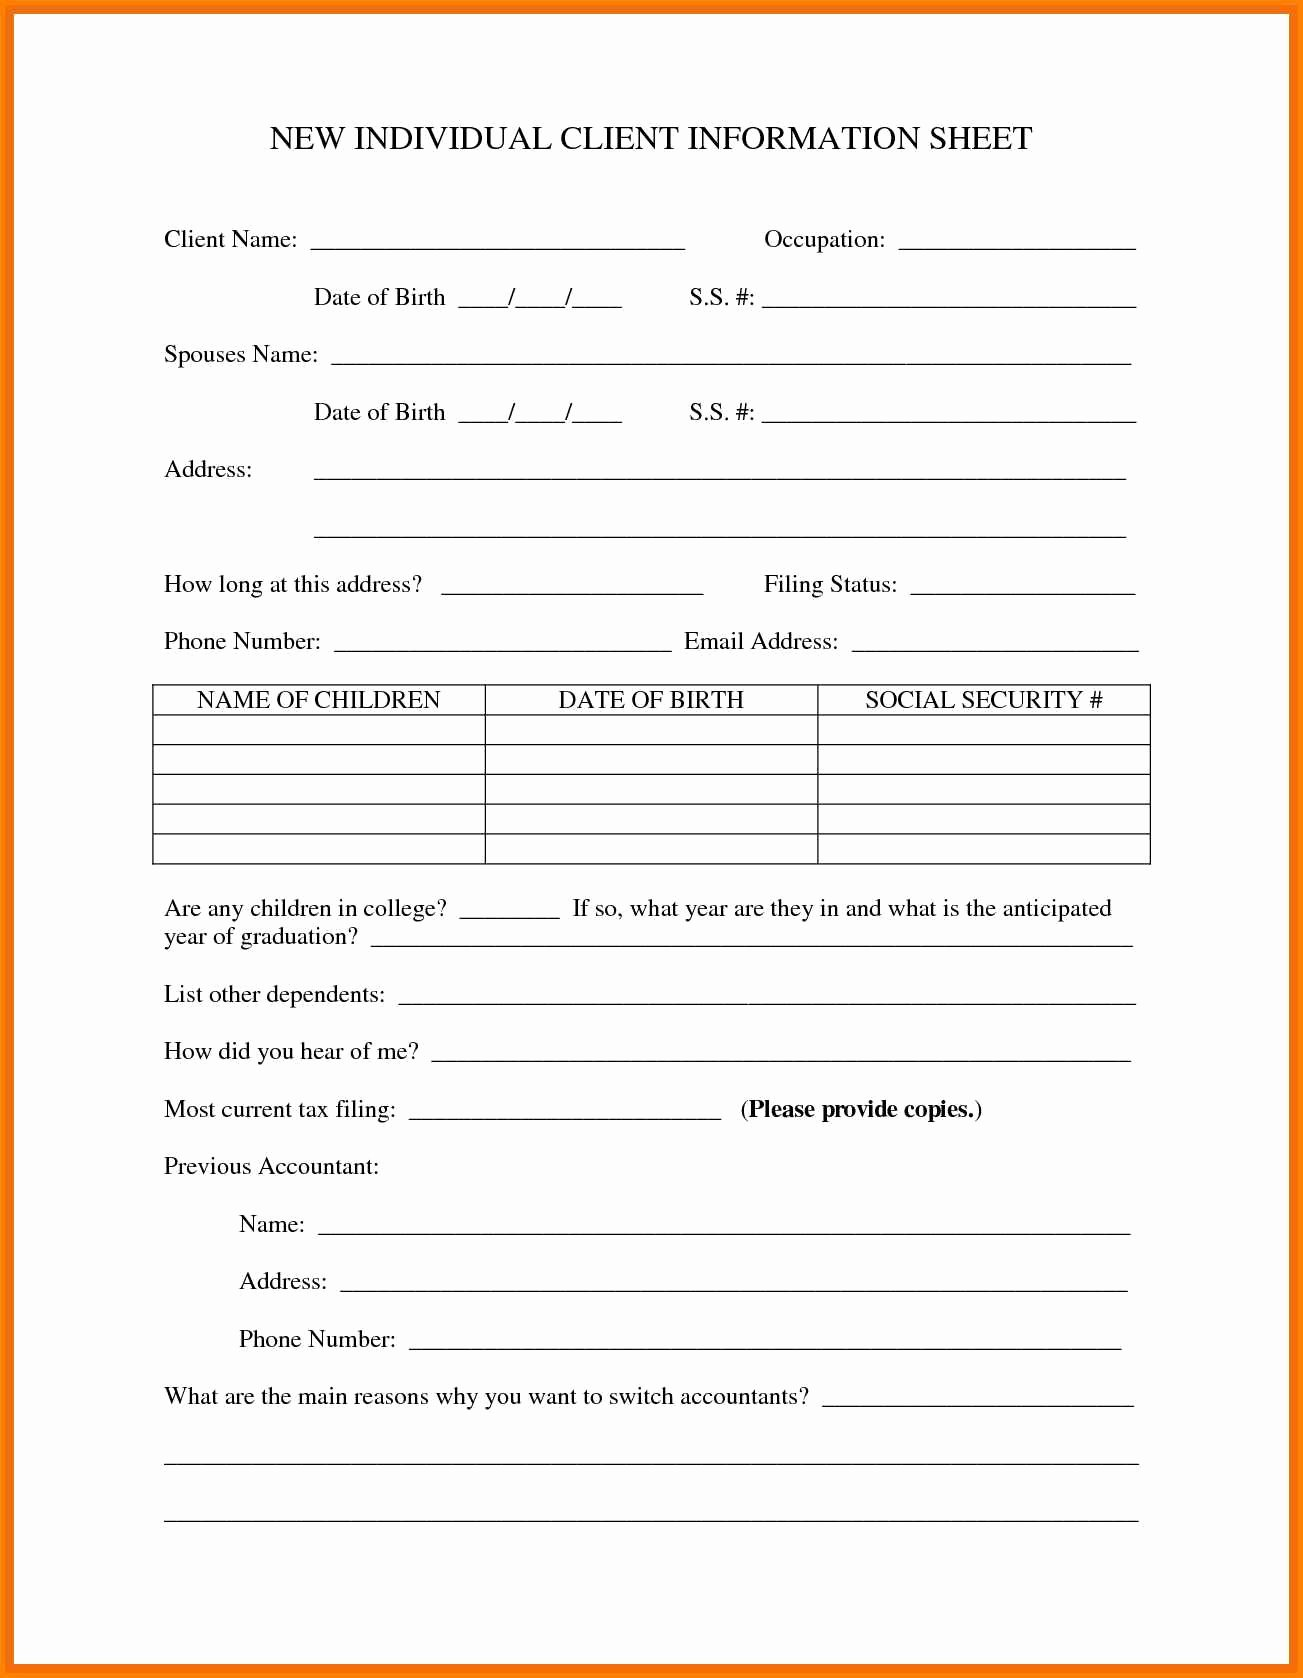 New Client form Template New Client Information form Template Portablegasgrillweber